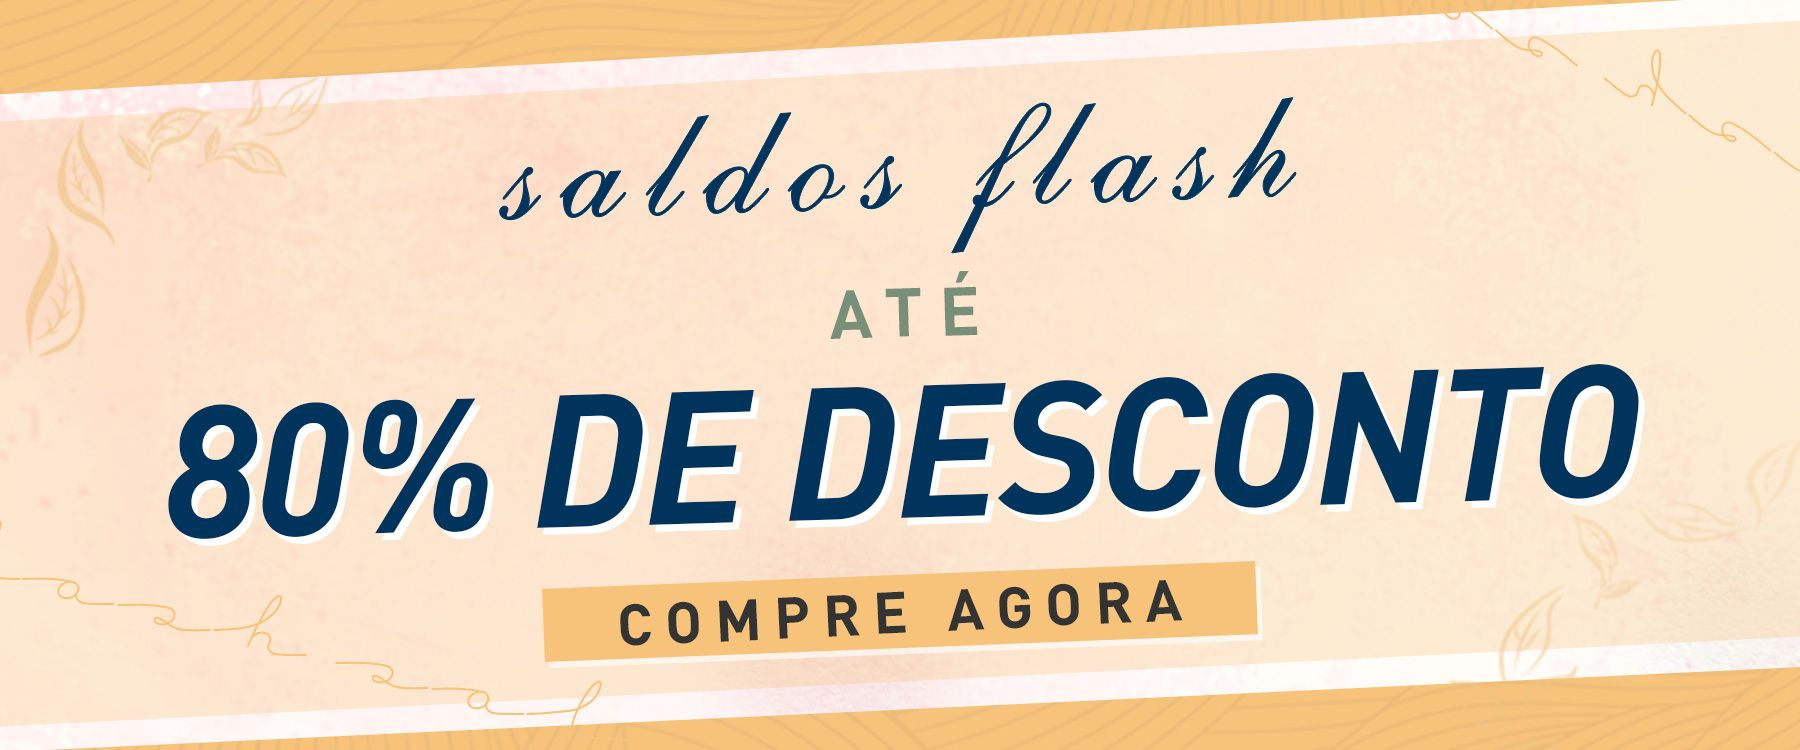 SALDOS FLASH